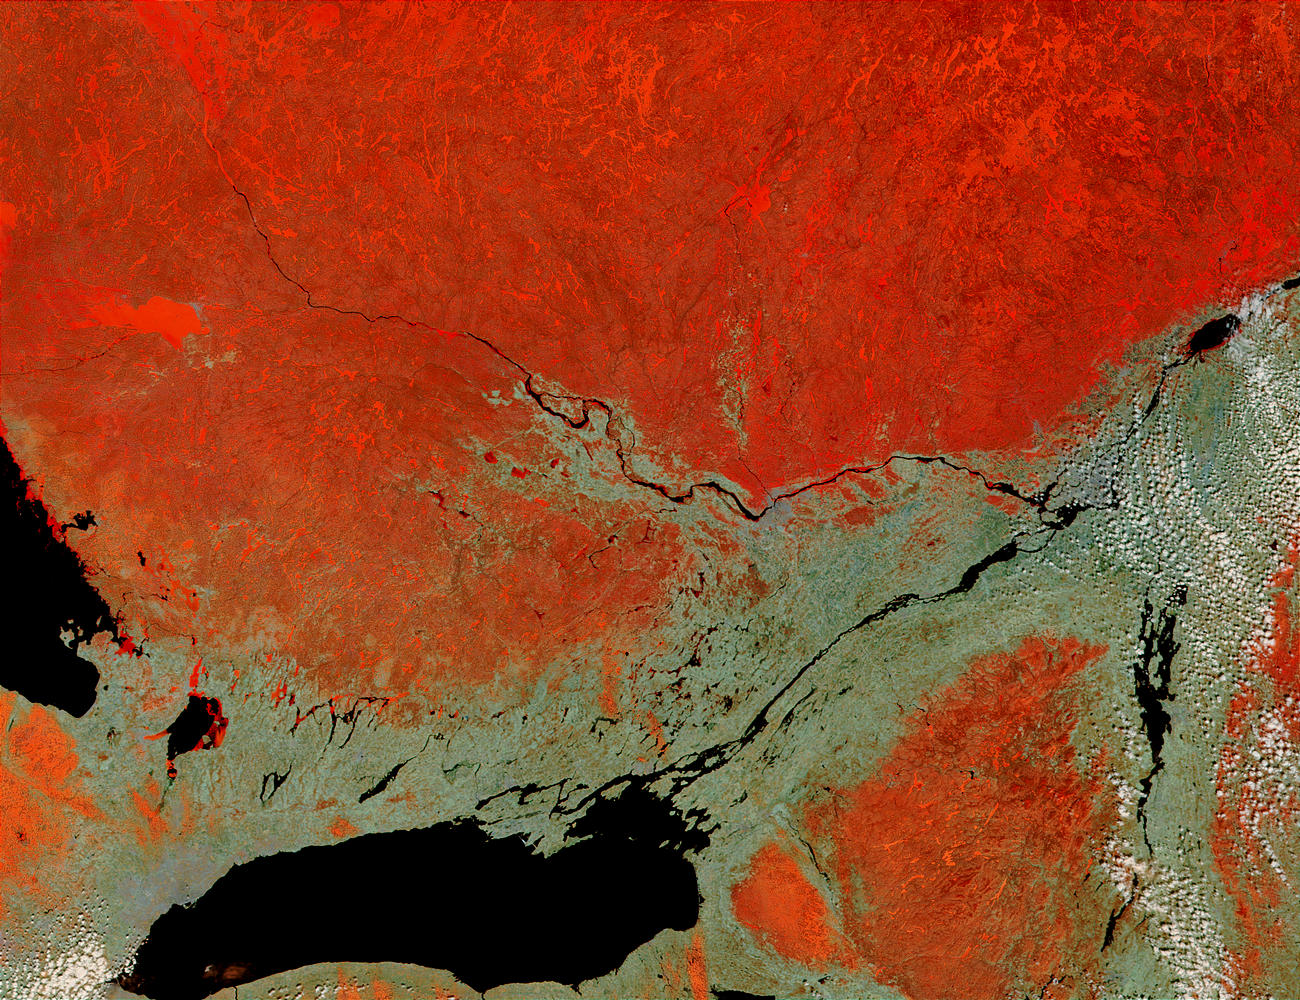 Lake Ontario, St. Lawrence River and Ottawa River, Canada - related image preview